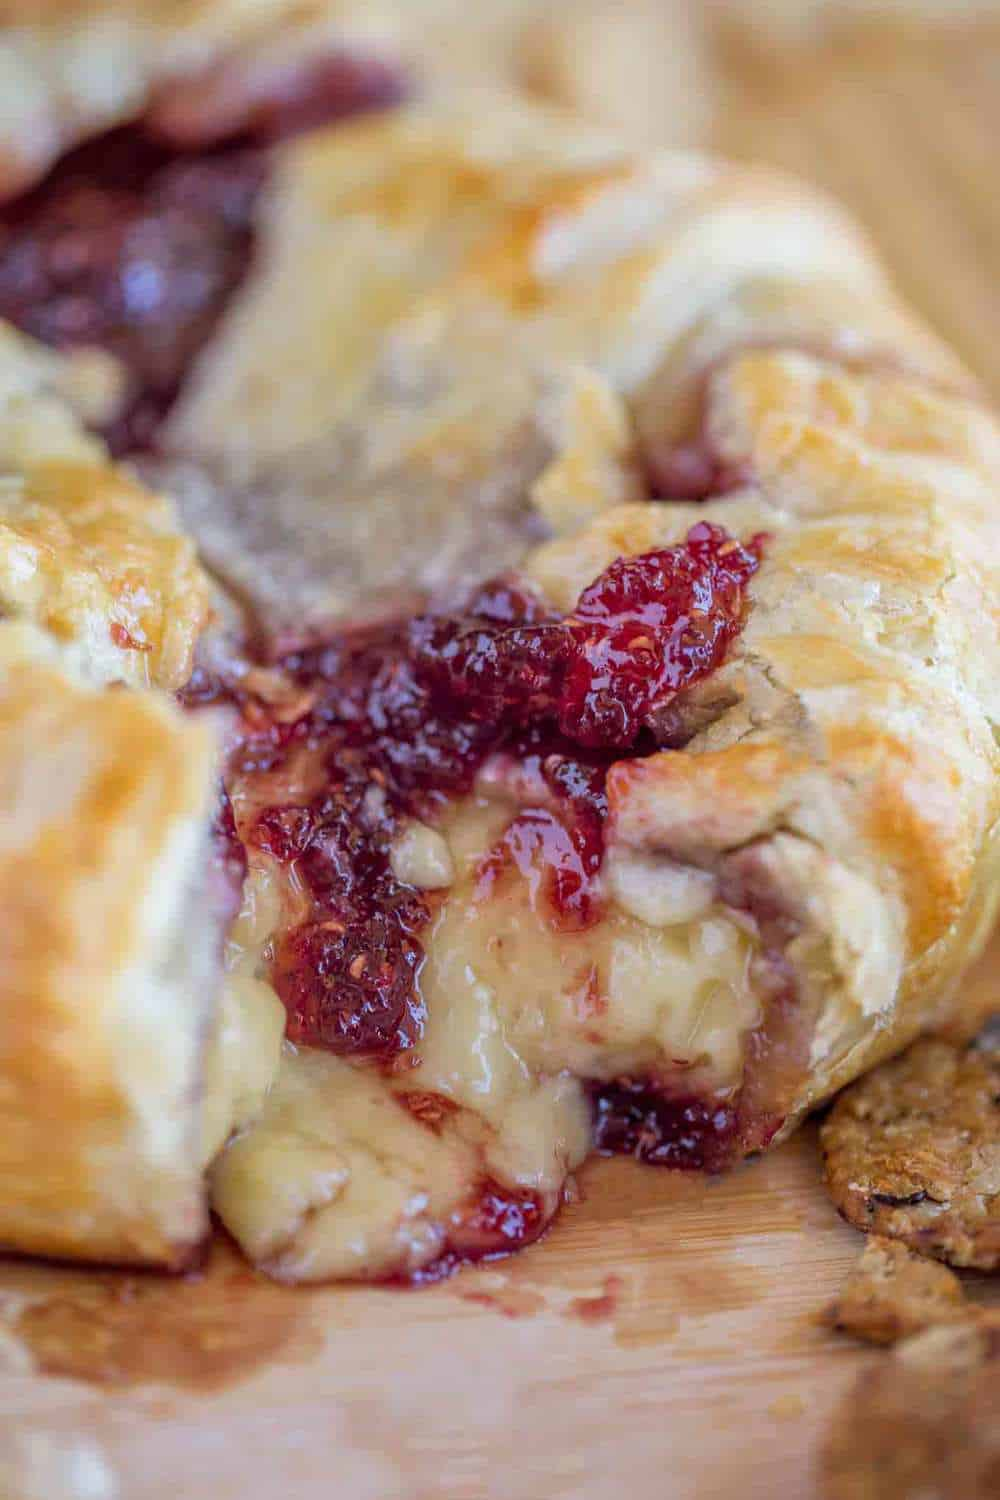 Creamy, delicious, baked brie with raspberry preserves.